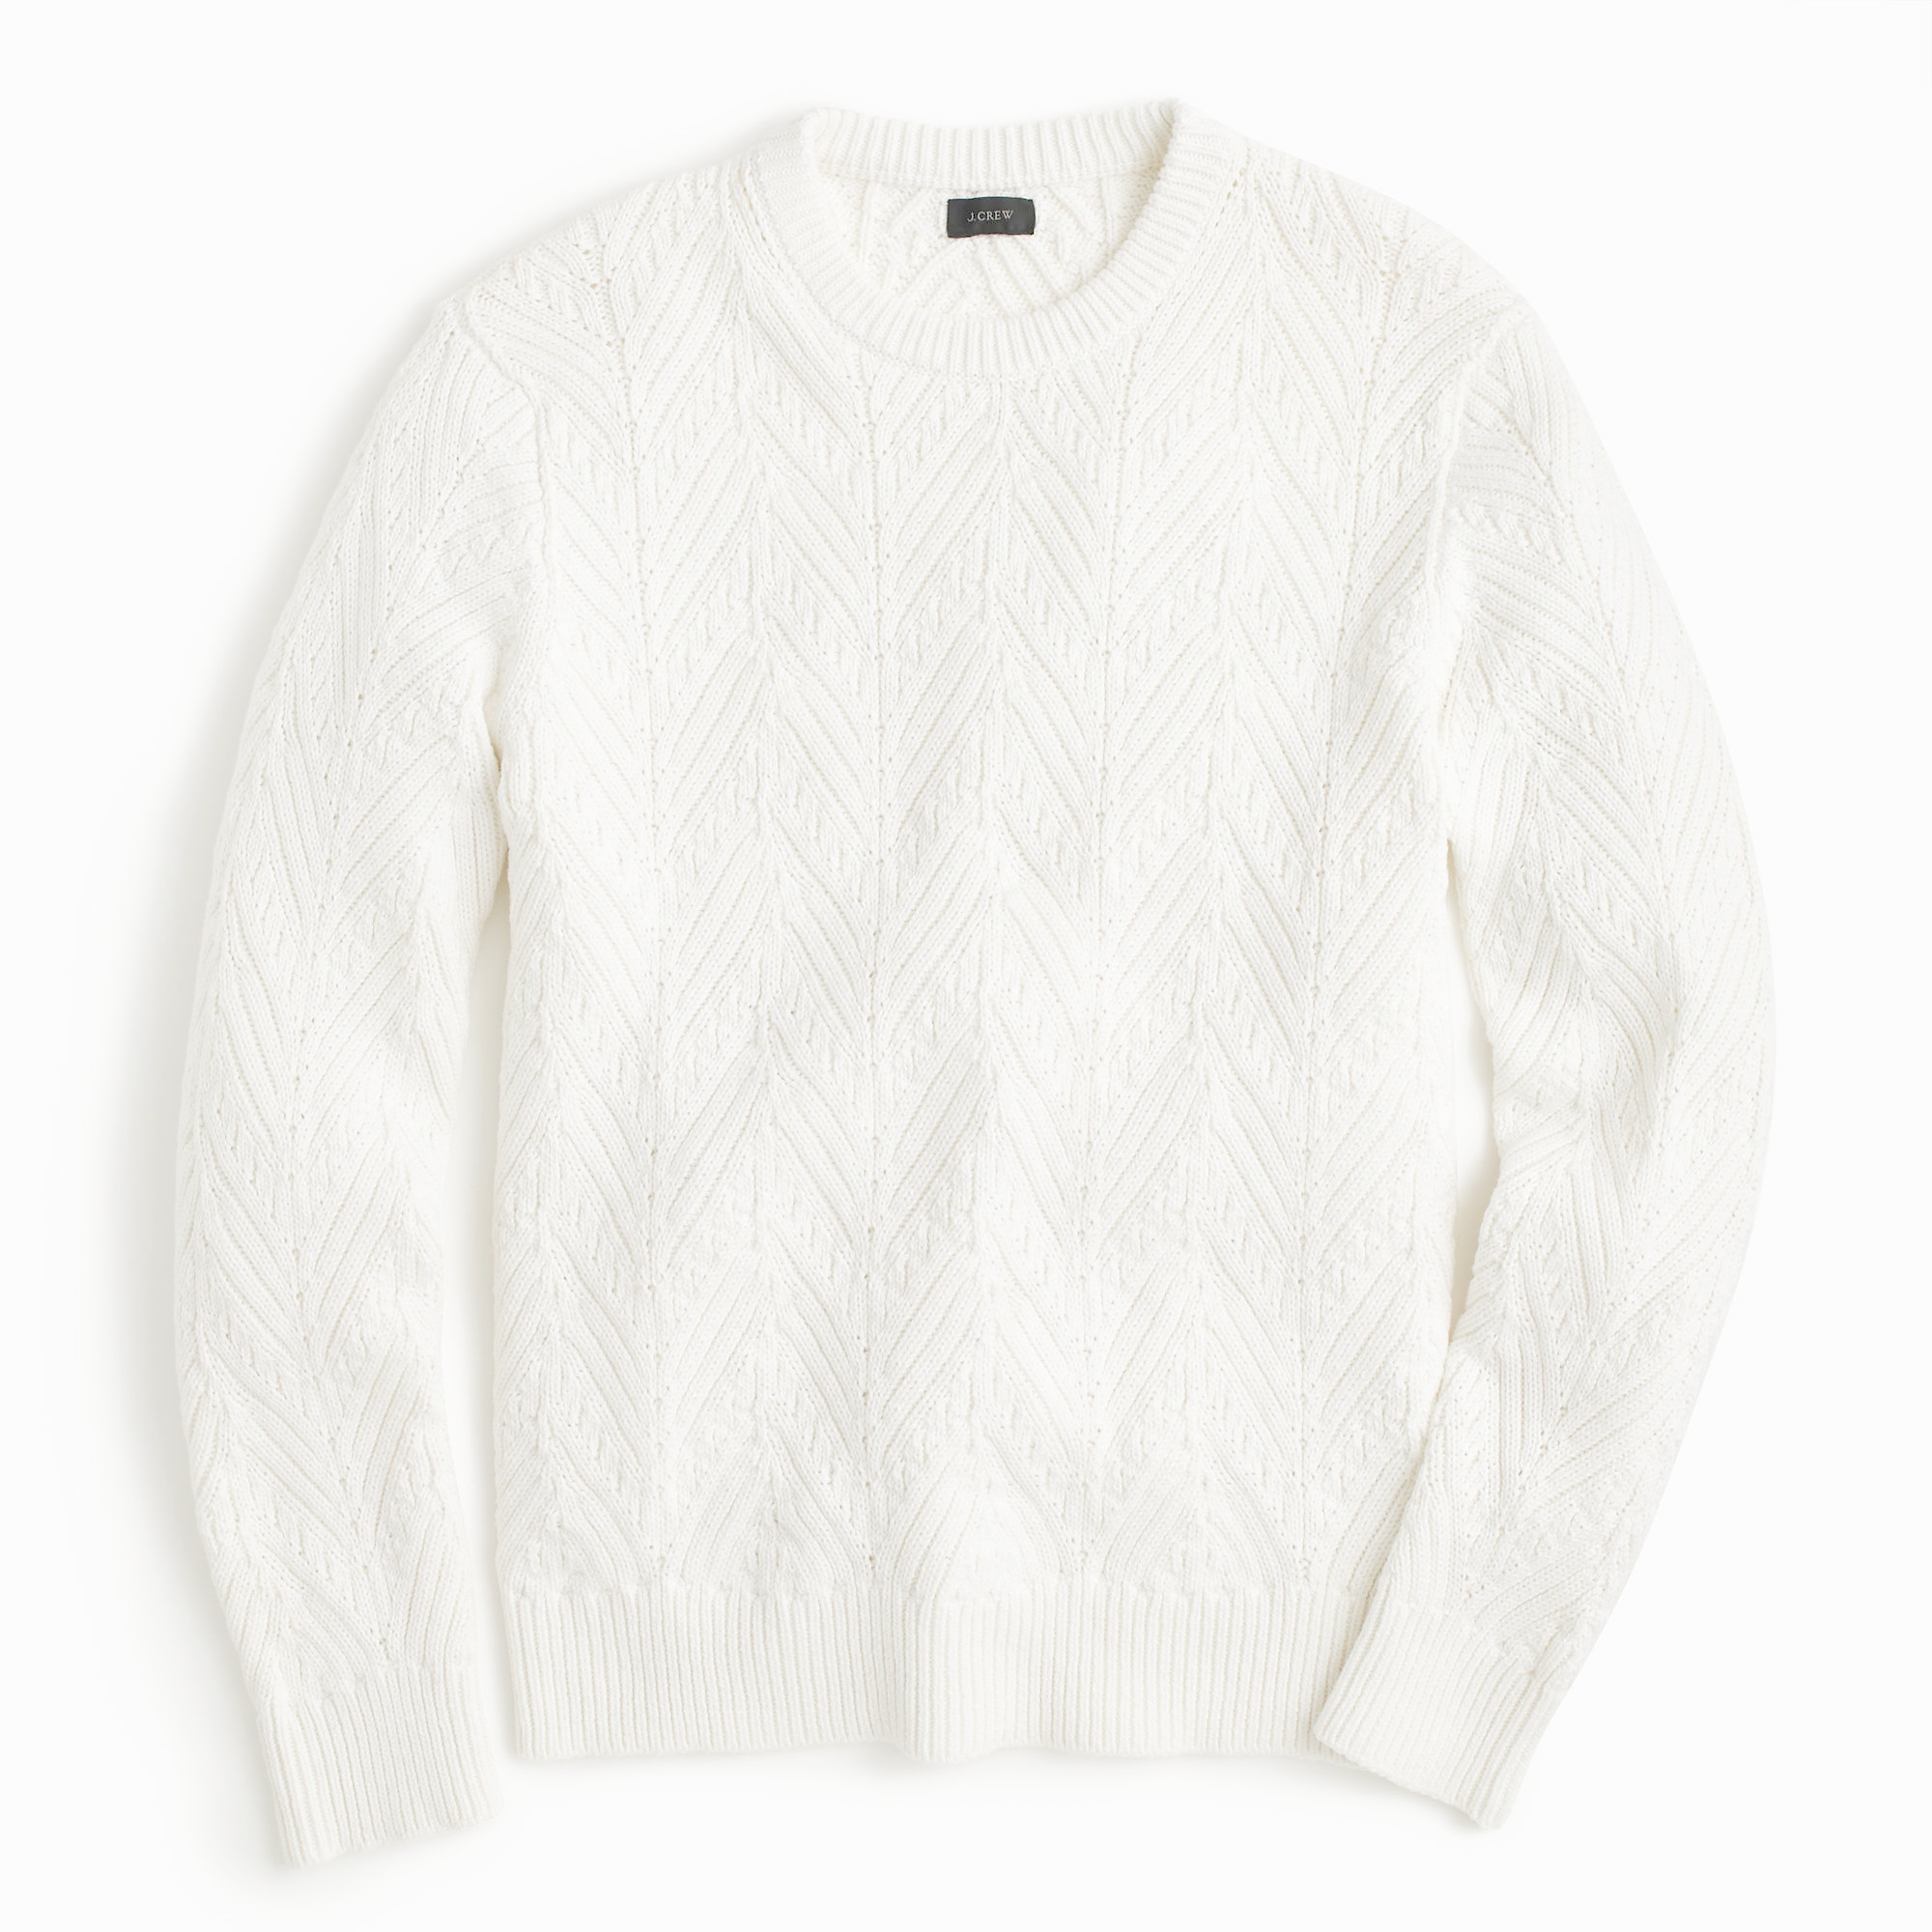 Cable-Knit Cotton-Cashmere Sweater $ Free Standard Shipping on orders $ or more More colors Our classic women's pullover sweaters, shells and cardigans pair effortlessly with khakis or jeans for effortless casual fashion.